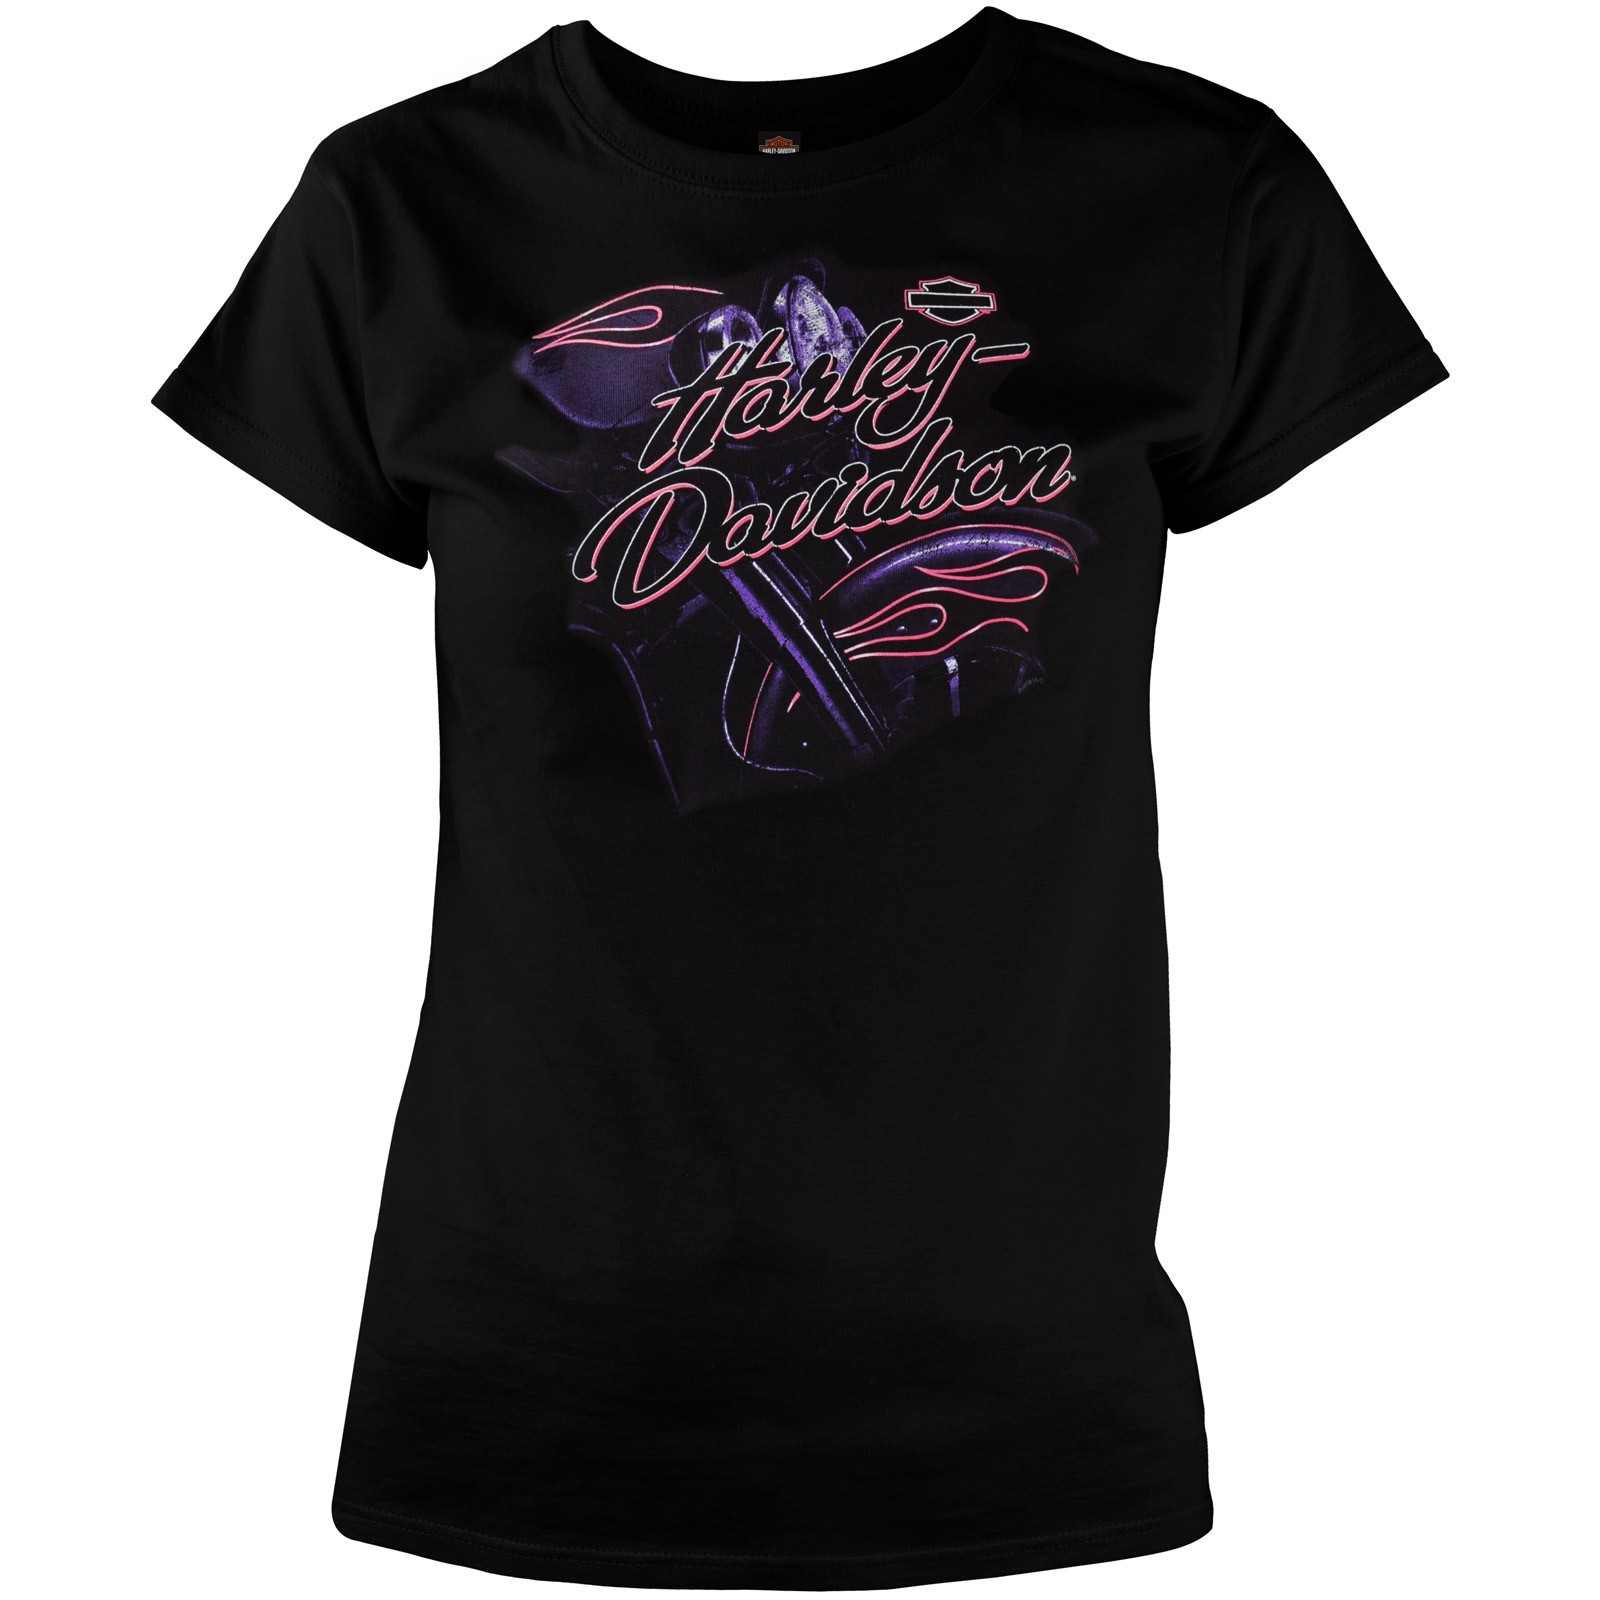 Harley-Davidson Women's Black Crewneck Graphic T-Shirt - Baghdad, Iraq | Abstract